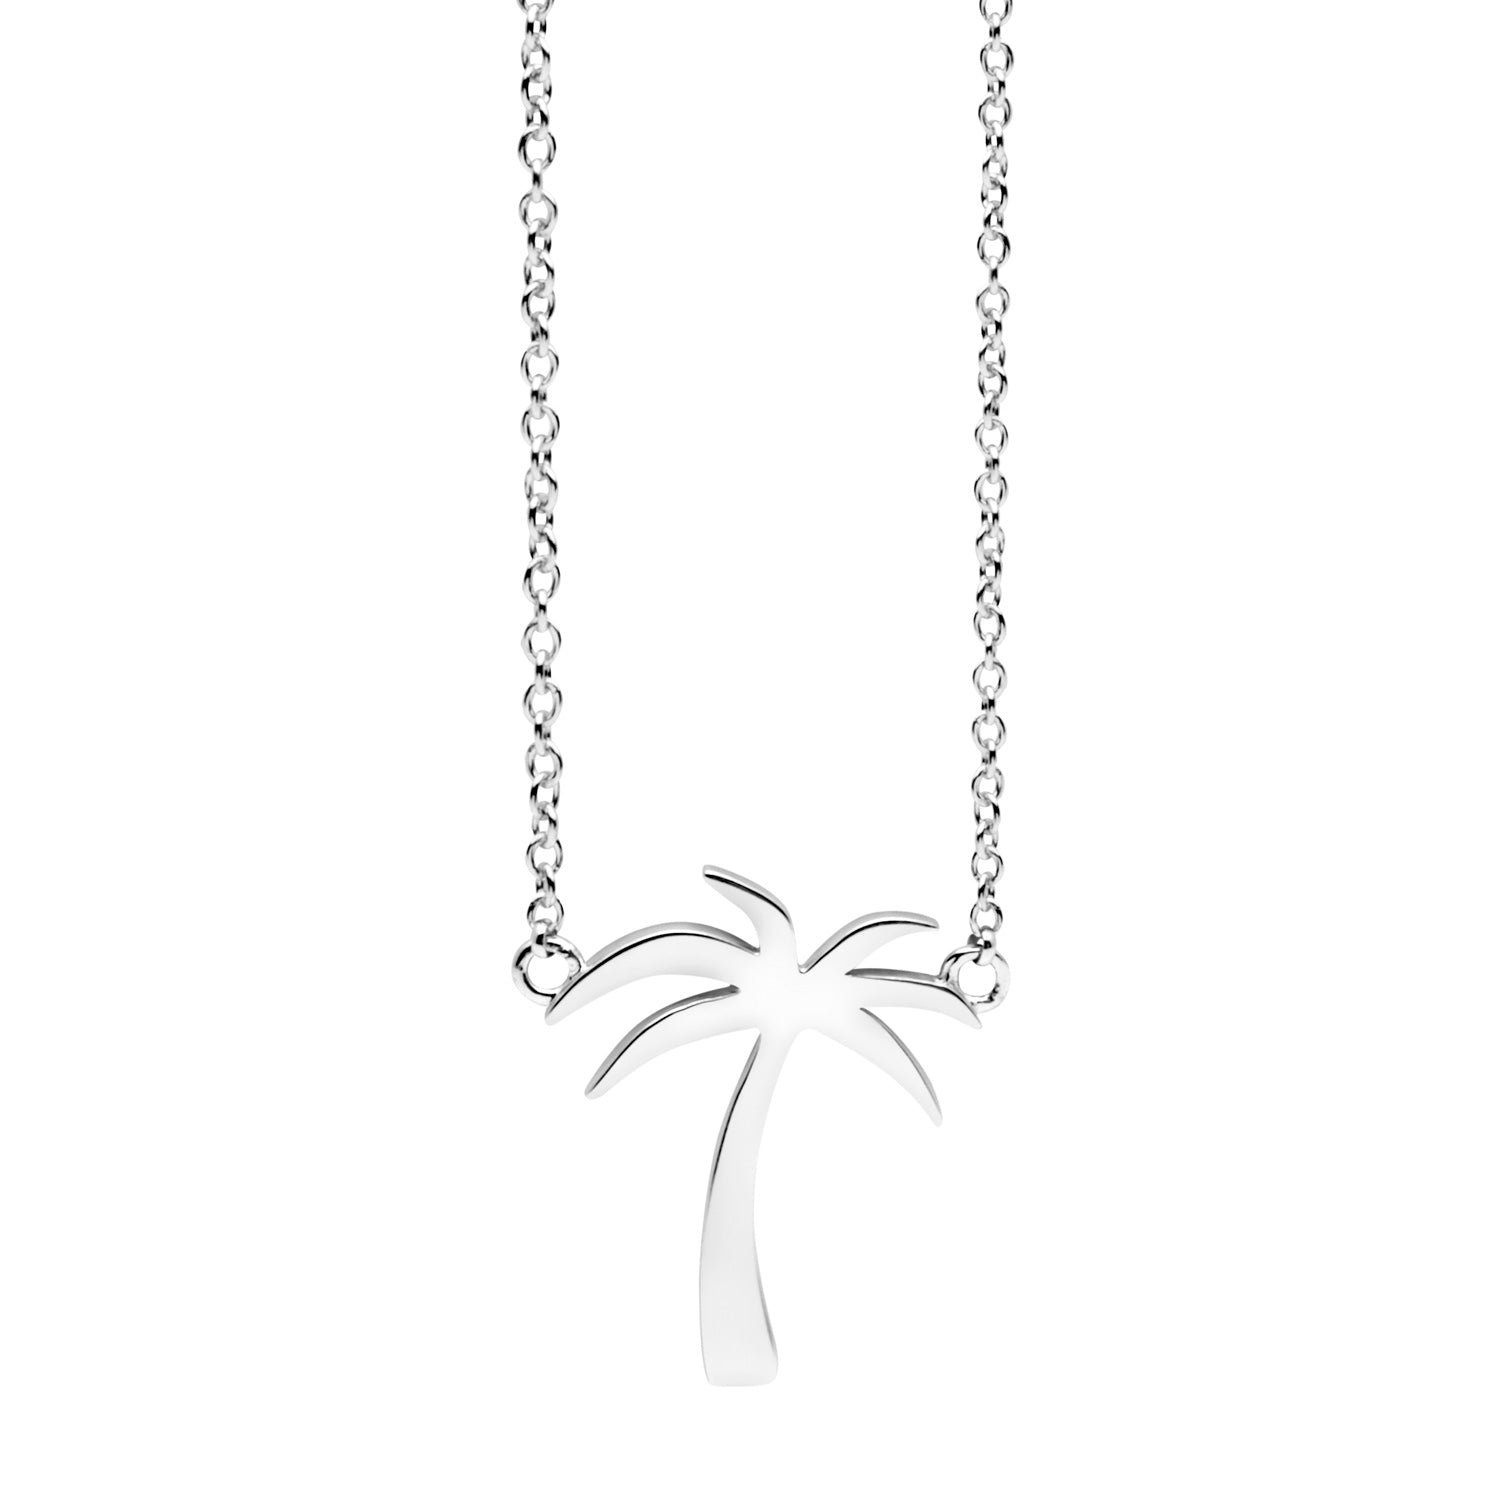 Kette Necklace Collier Halskette Beach Life Tree - NANA KAY Jewelry Deutschland - Sterling Silber Schmuck